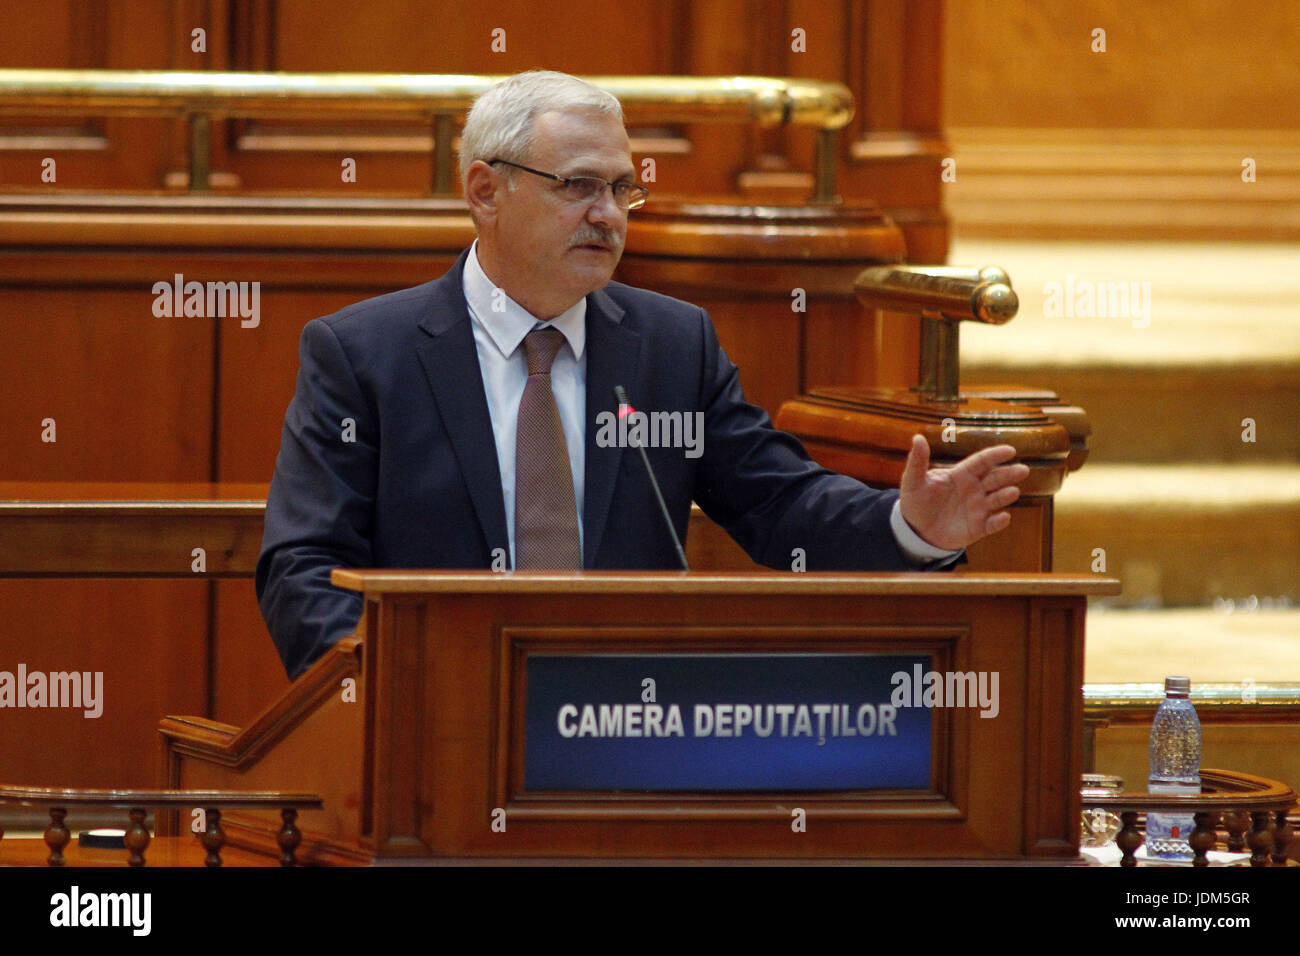 Bucharest, Romania. 21st June, 2017. Social Democratic Party leader Liviu Dragnea speaks at the parliament during - Stock Image